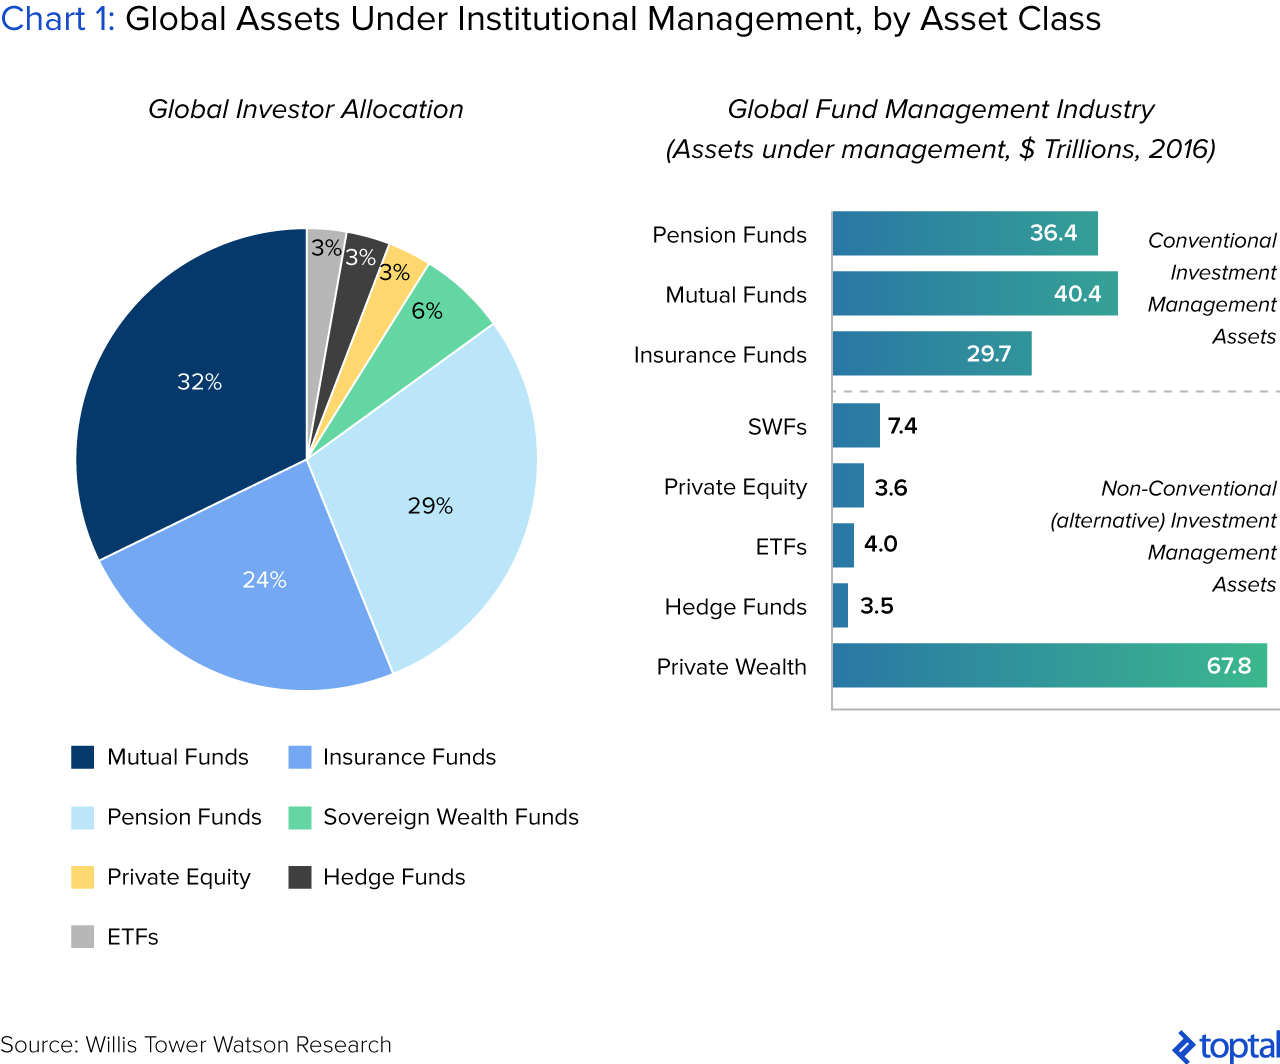 Chart 1: Global Assets under Institutional Management, by Asset Class